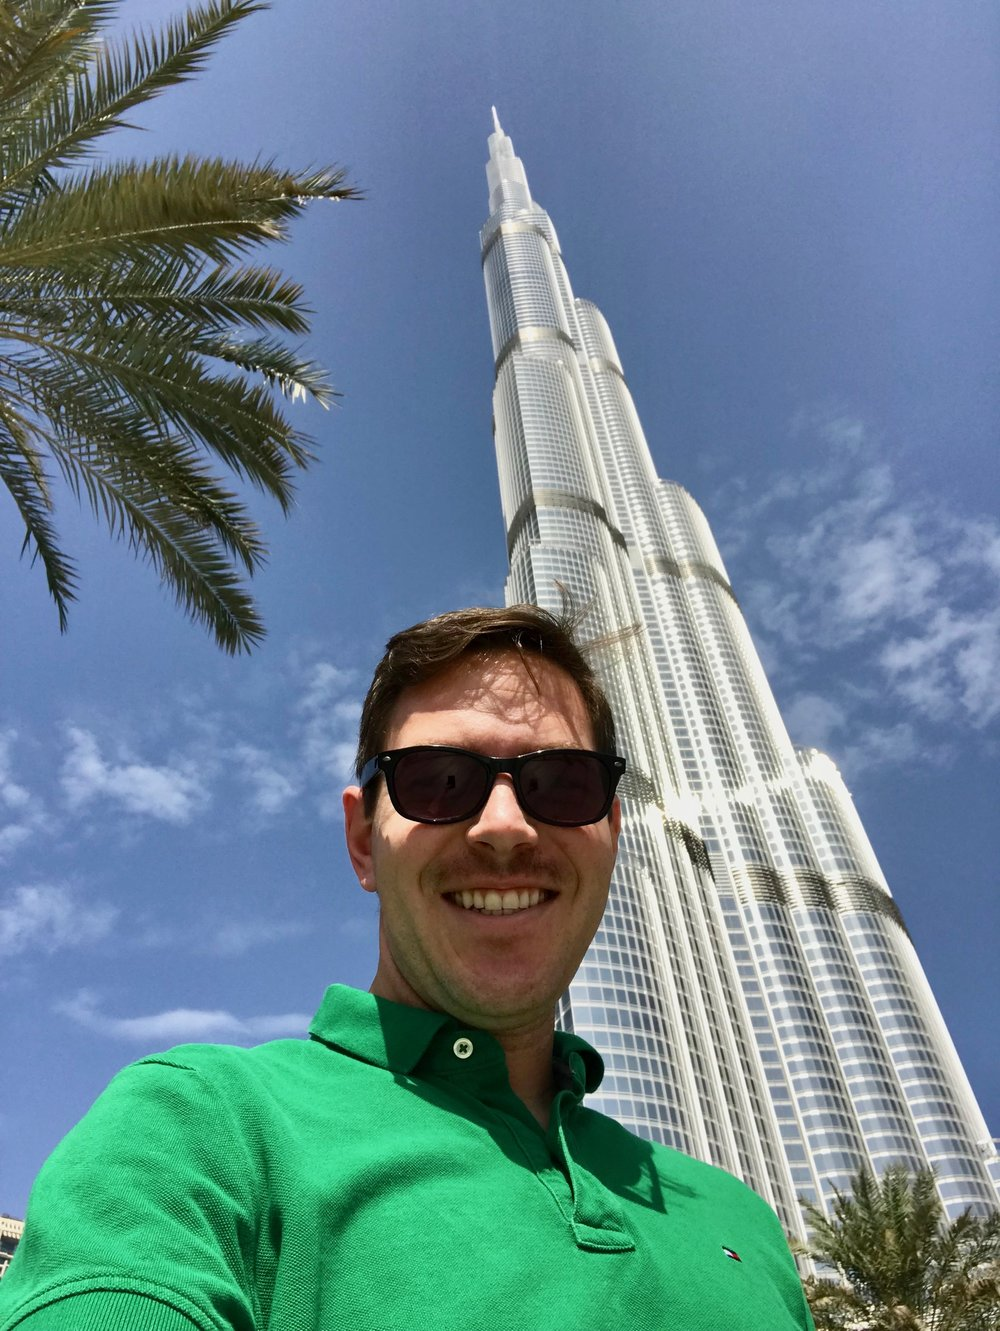 Visiting the world's tallest building in Dubai.